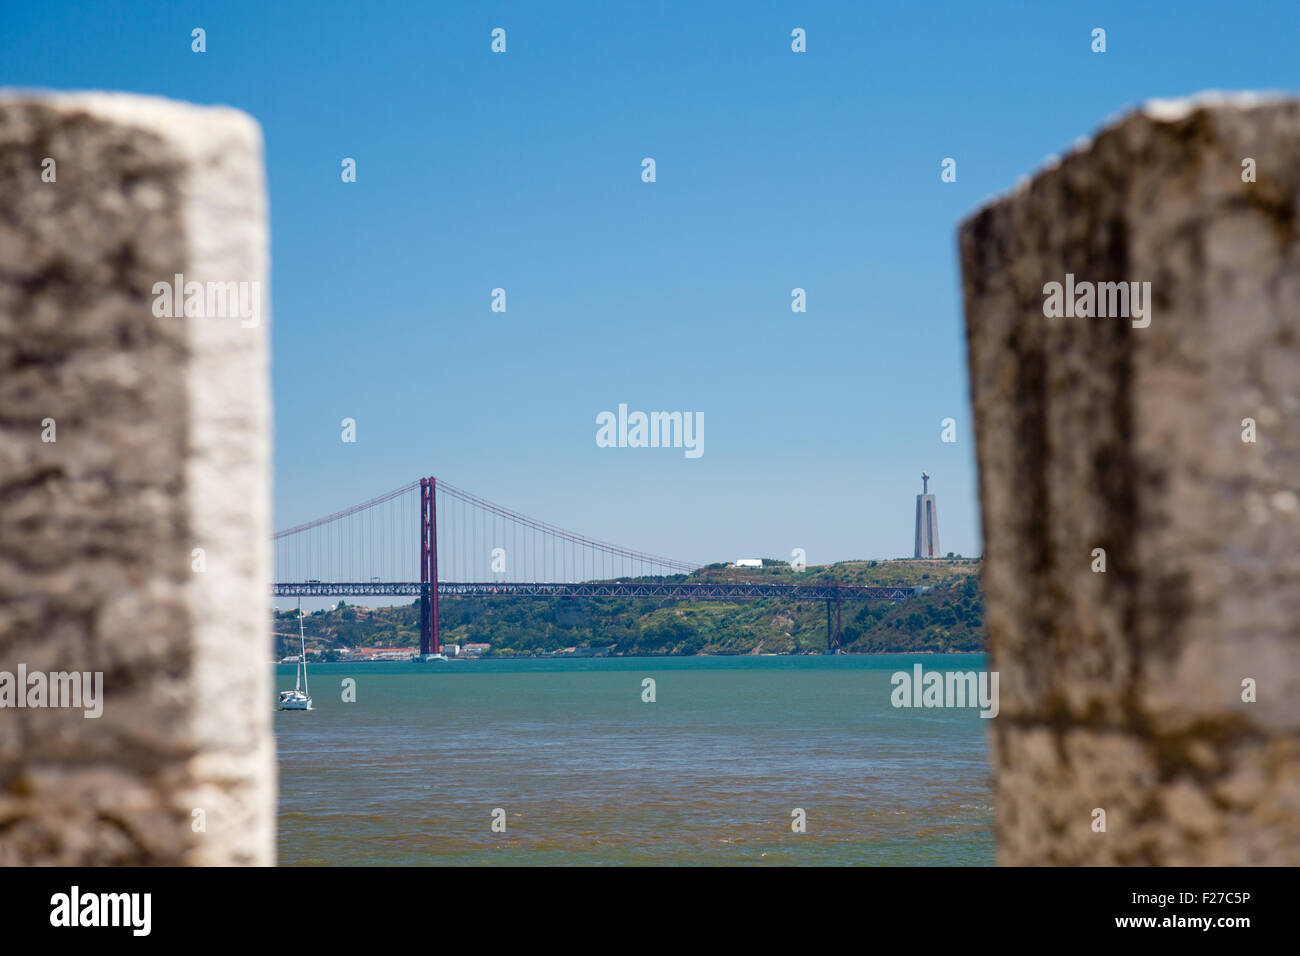 View from Torre de Belem tower up the Tagus river to the Ponte 25 de Abril bridge and Cristo Rei, Lisbon, Portugal - Stock Image